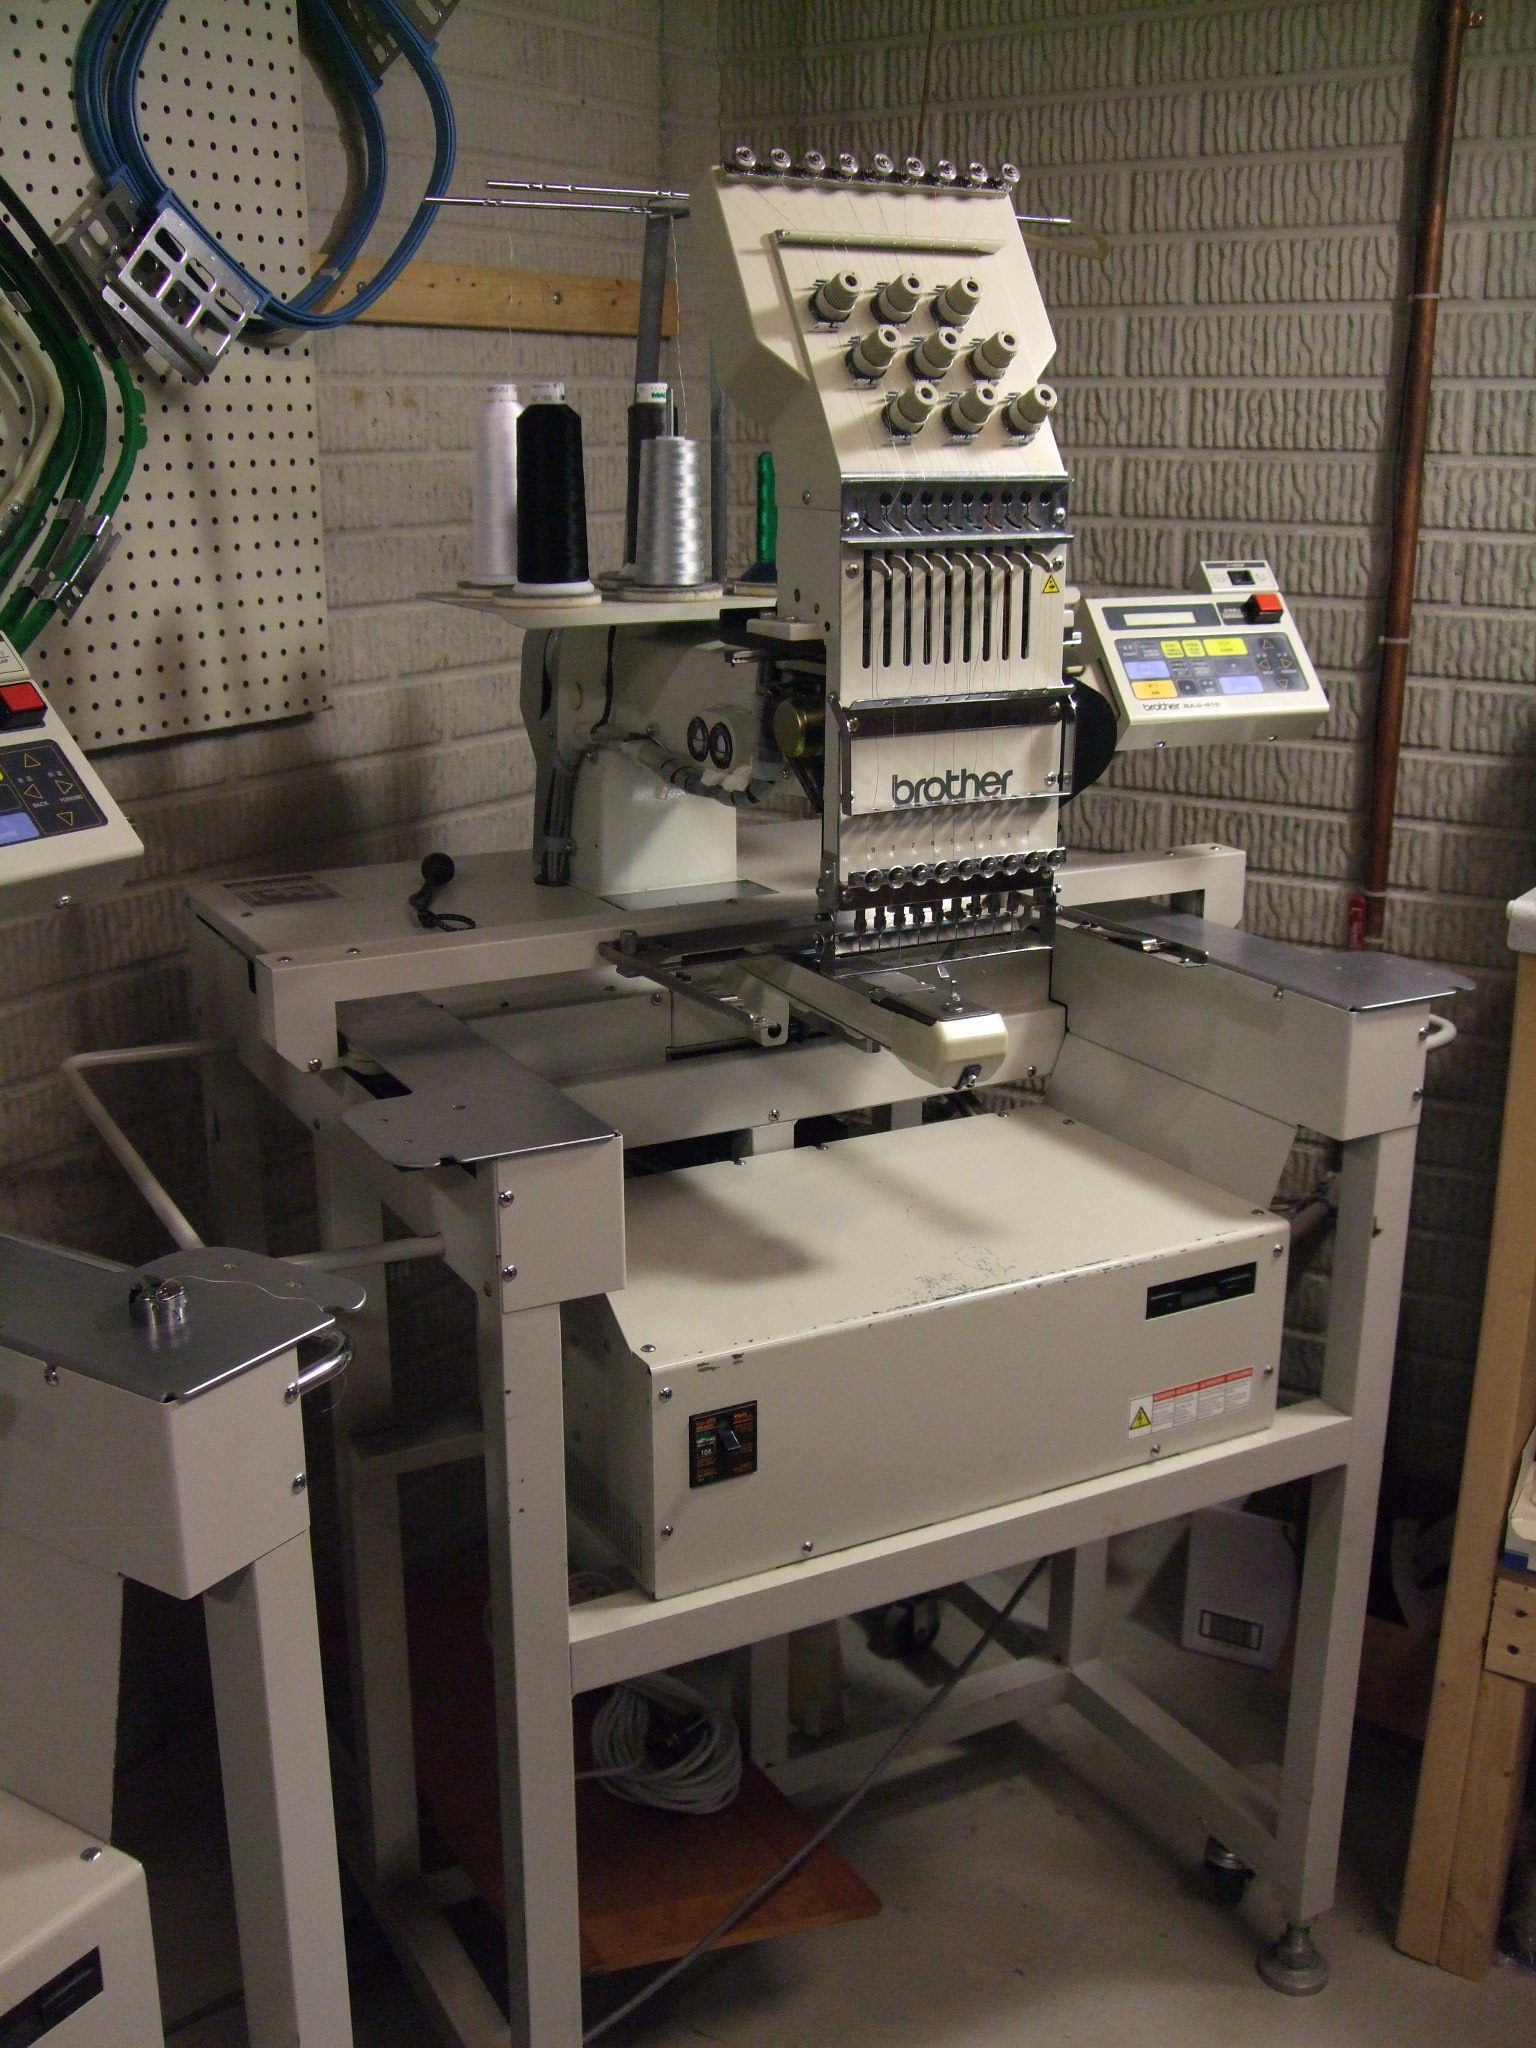 Brother BAS416 Single Head 9 Needle Industrial Embroidery Machine - only $1500